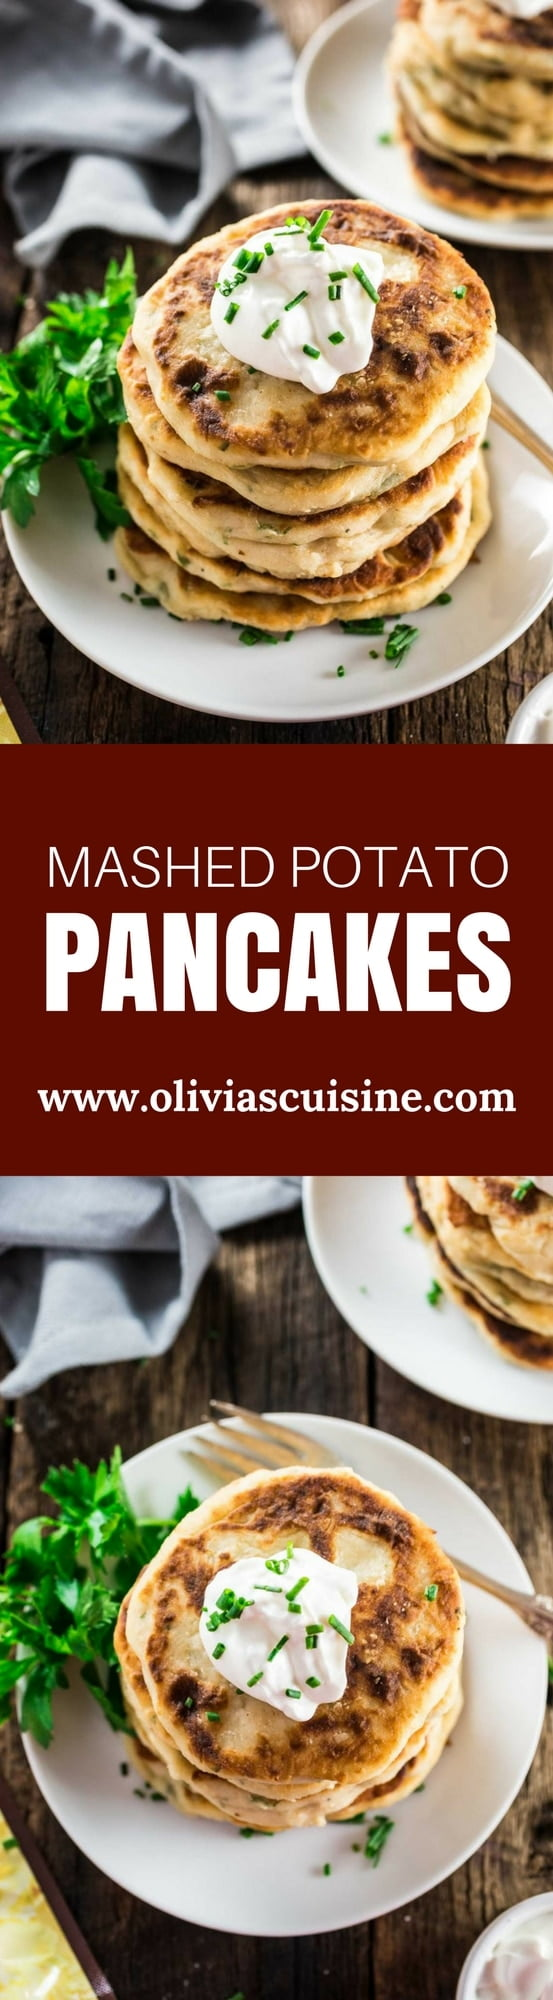 "Mashed Potato Pancakes | www.oliviascuisine.com | Crisp and tender buttery Mashed Potato Pancakes are the perfect start for your Thanksgiving holiday! Made with just a few basic ingredients and ready in less than 20 minutes. Because ""delicious yet easy"" is my holiday motto!"